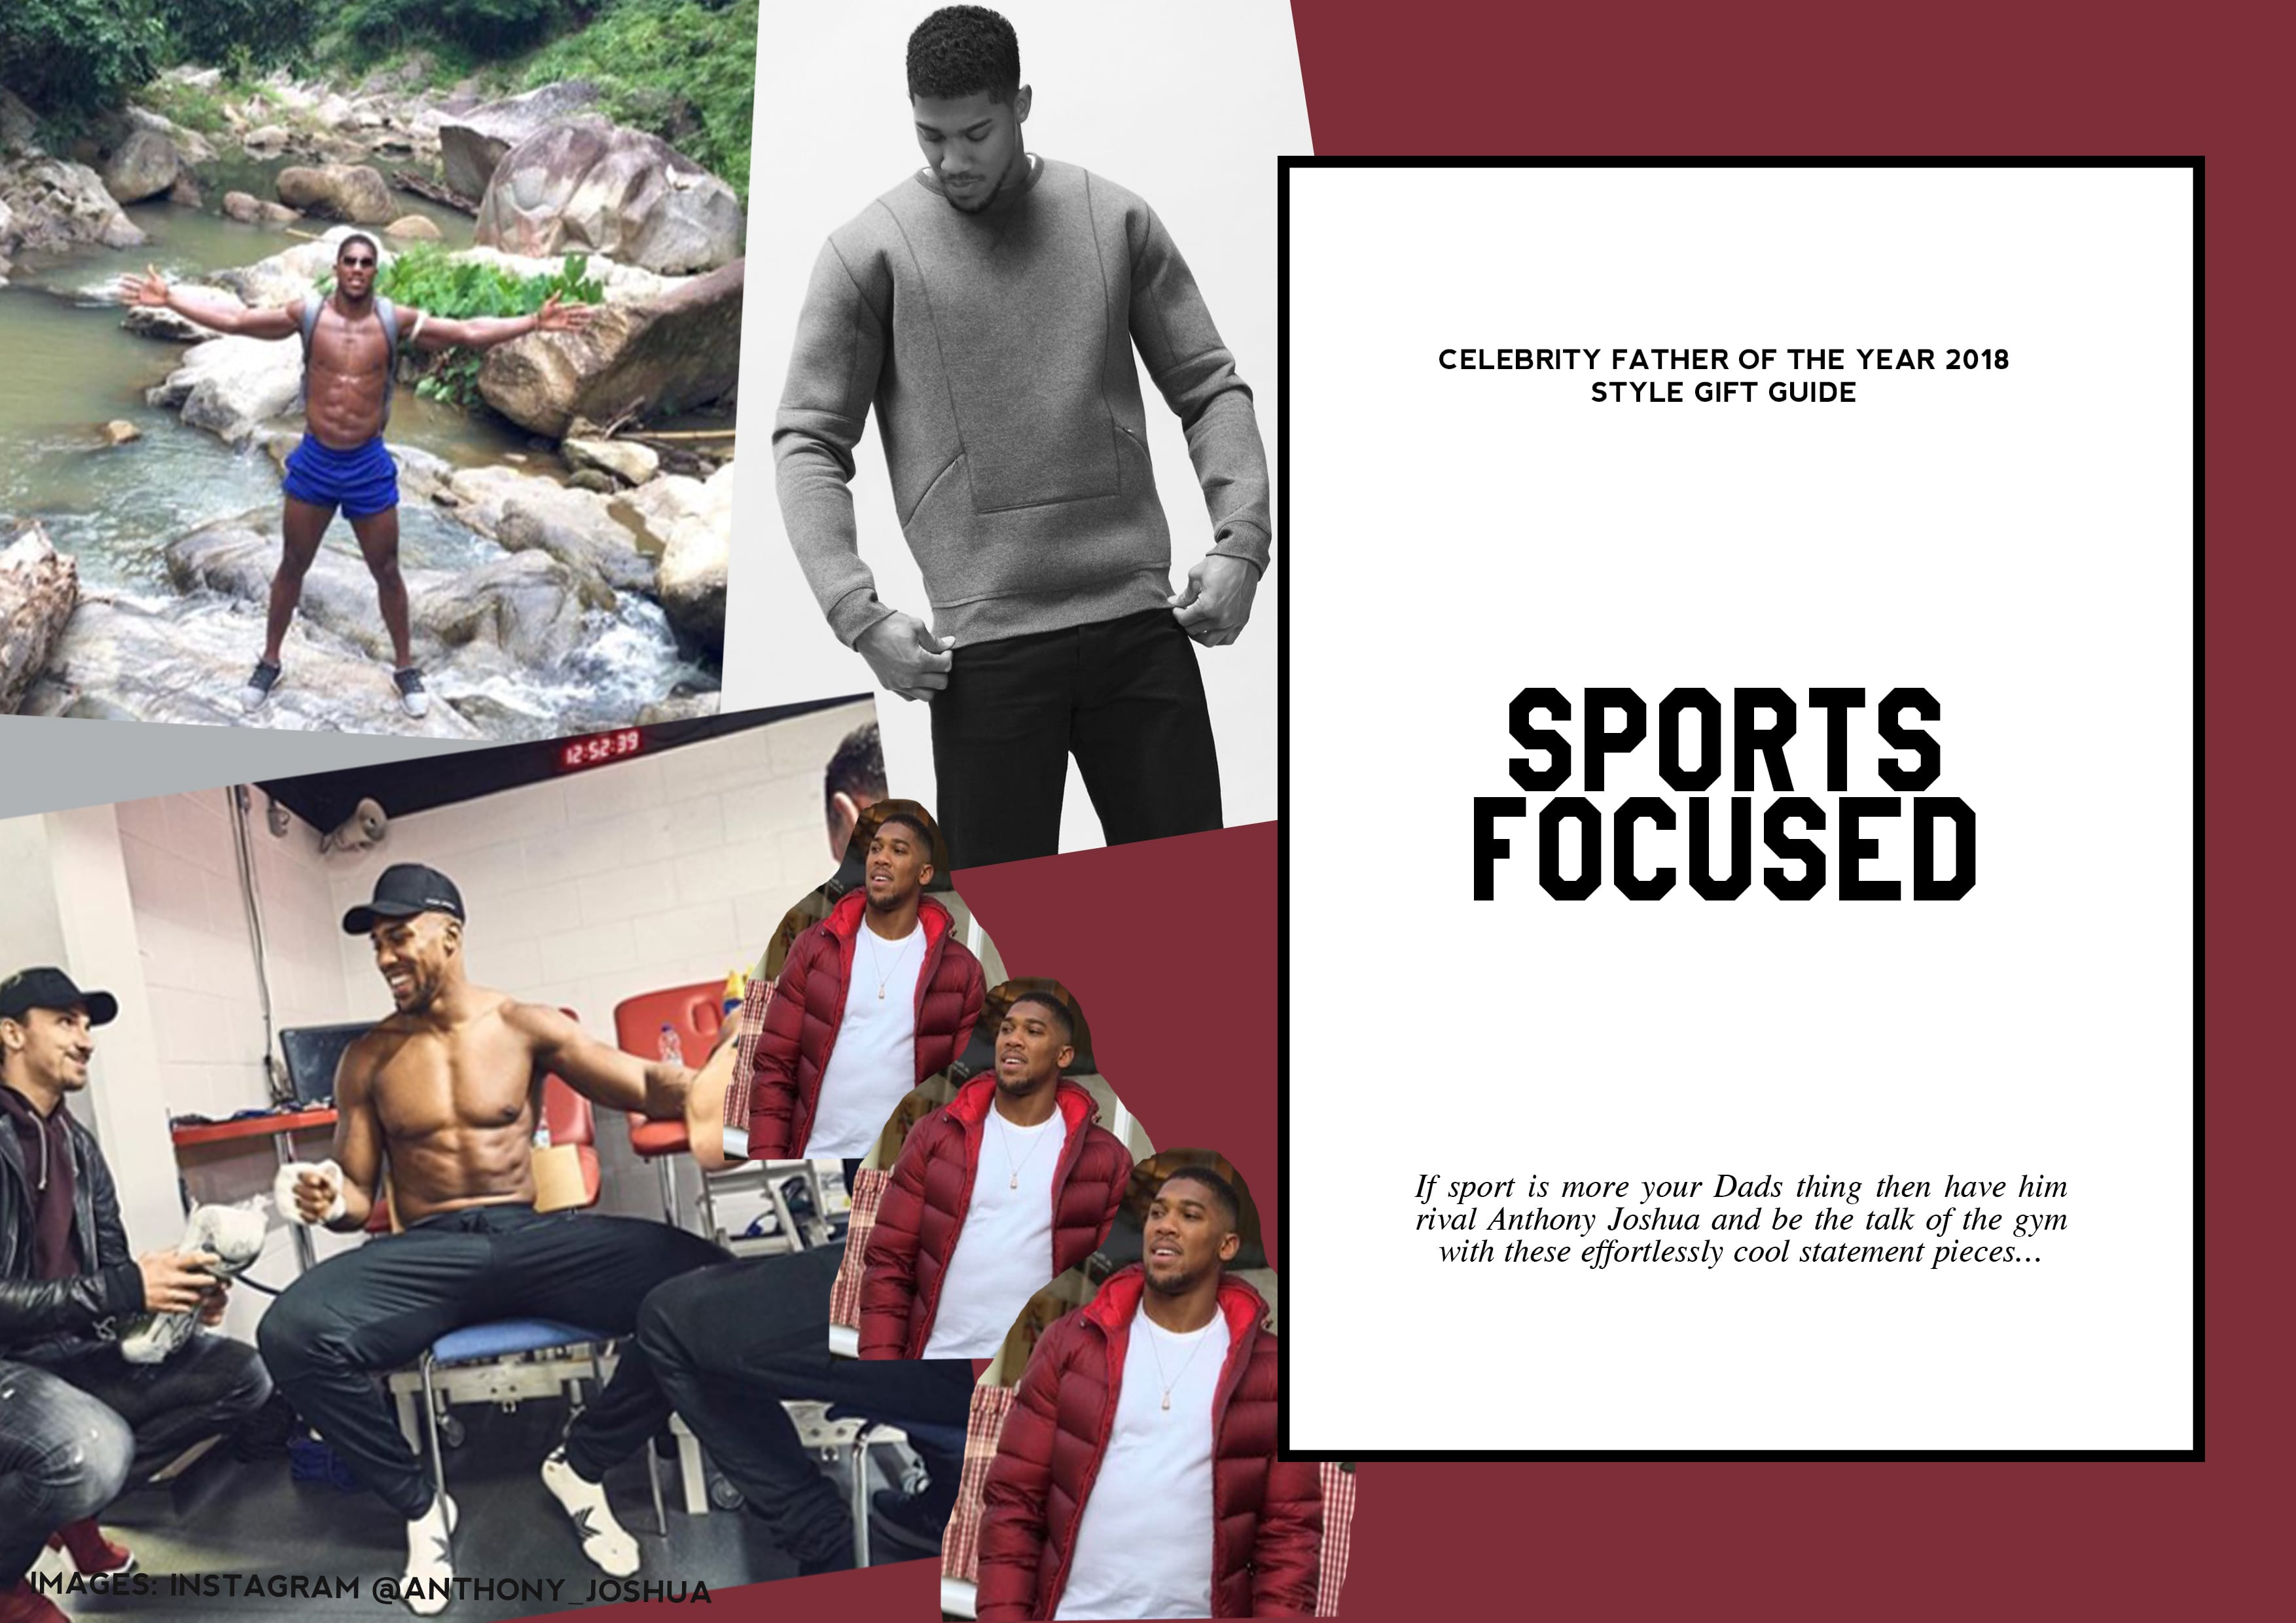 Anthony Joshua, World Champion, Boxing, Menswear, Fashion, Sports, Gym, Style Guide, Gift Guide, Father's Day 2018, Father of the year